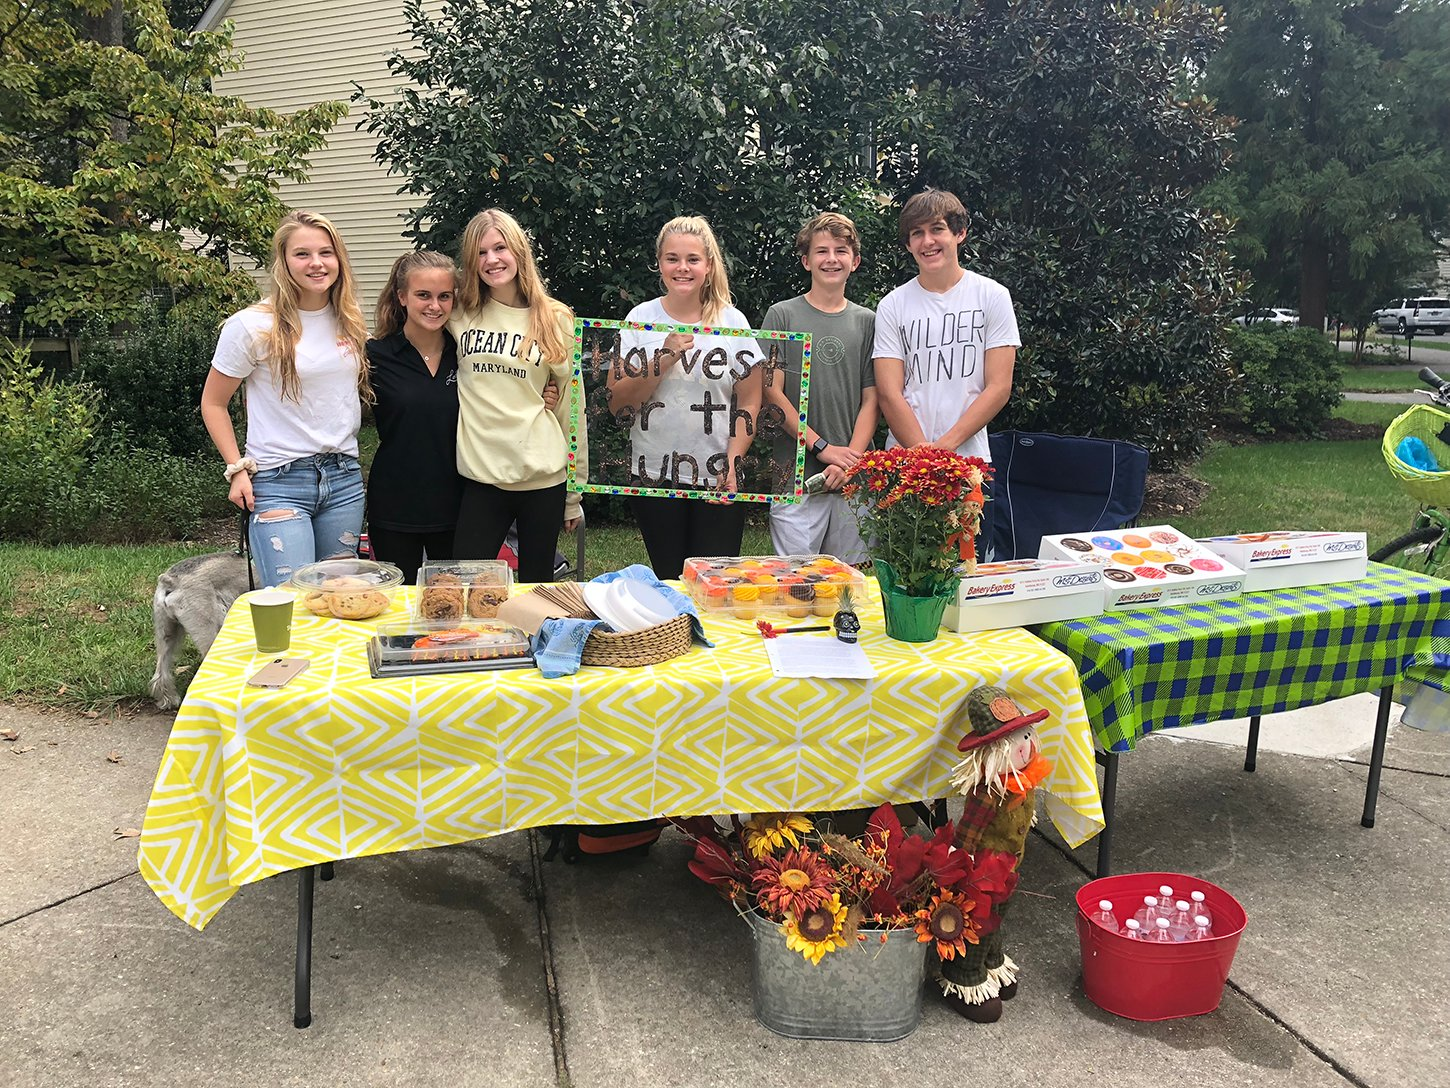 Jacqueline Cloud (center) helped English teacher Leala Smith raise $230 for Harvest for the Hungry by selling baked goods.